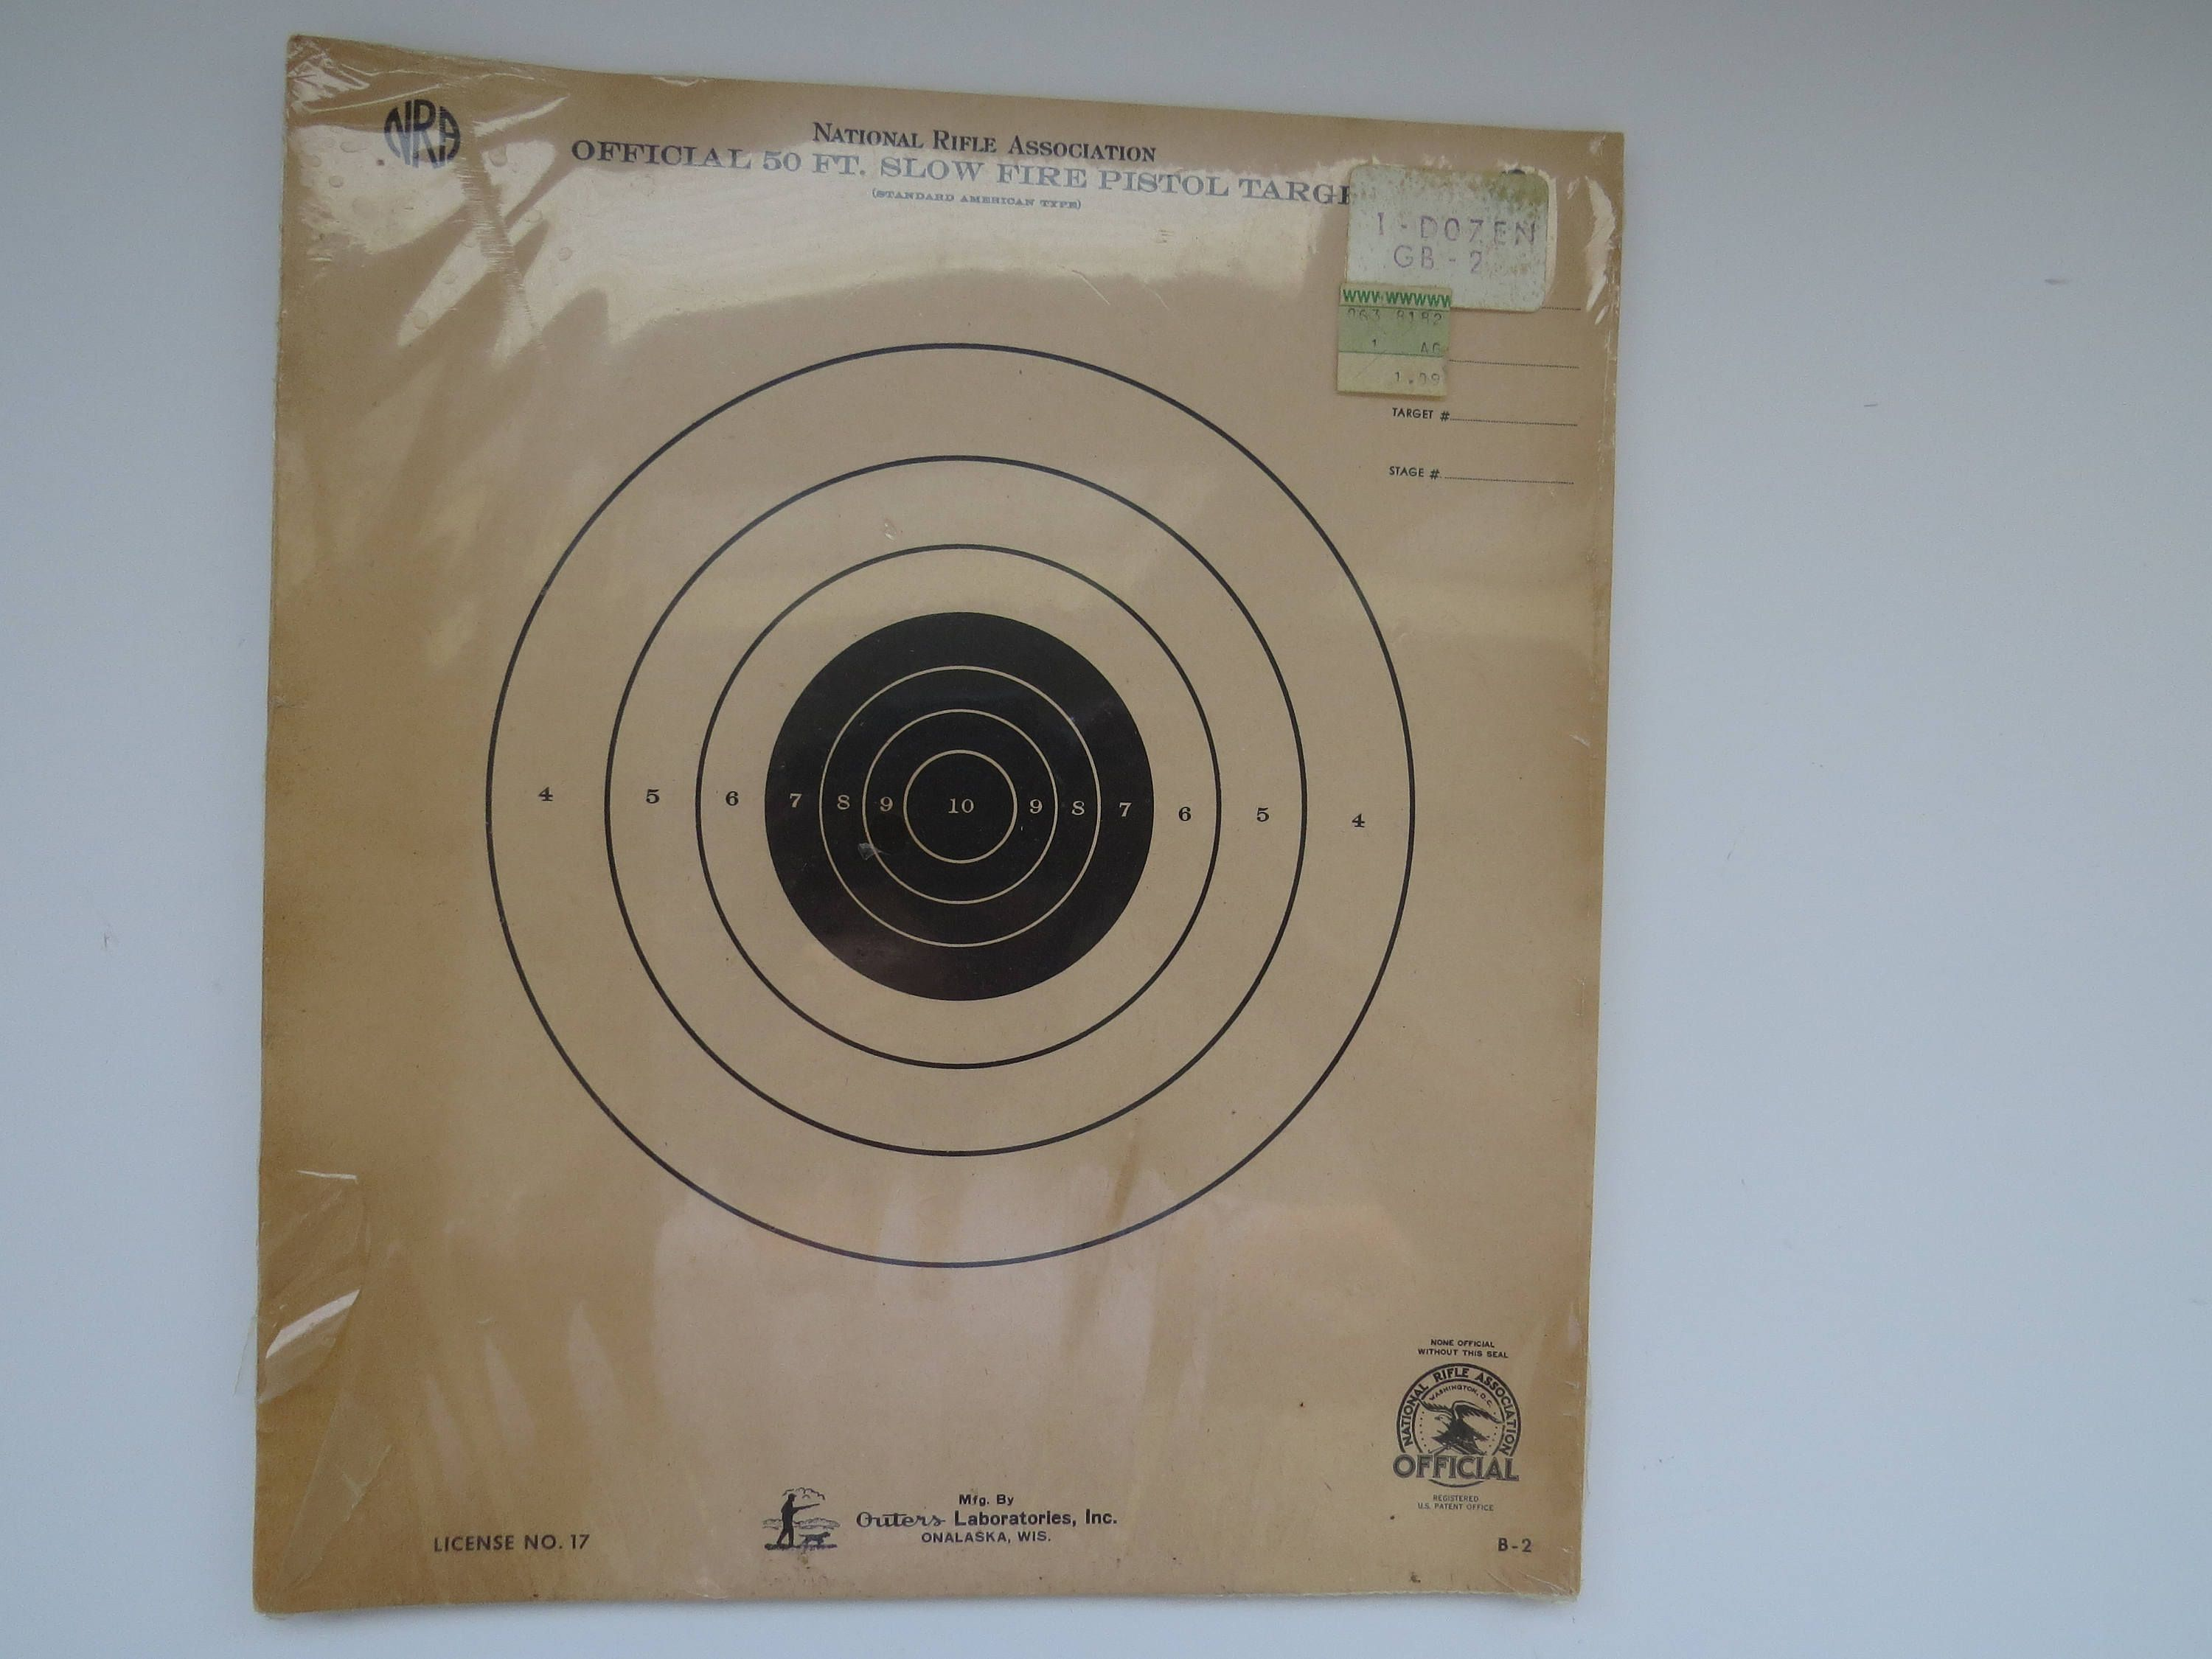 image about Nra B-8 Target Printable referred to as Common NRA Pistol Objectives - 12 Aims - Formal NRA B-2